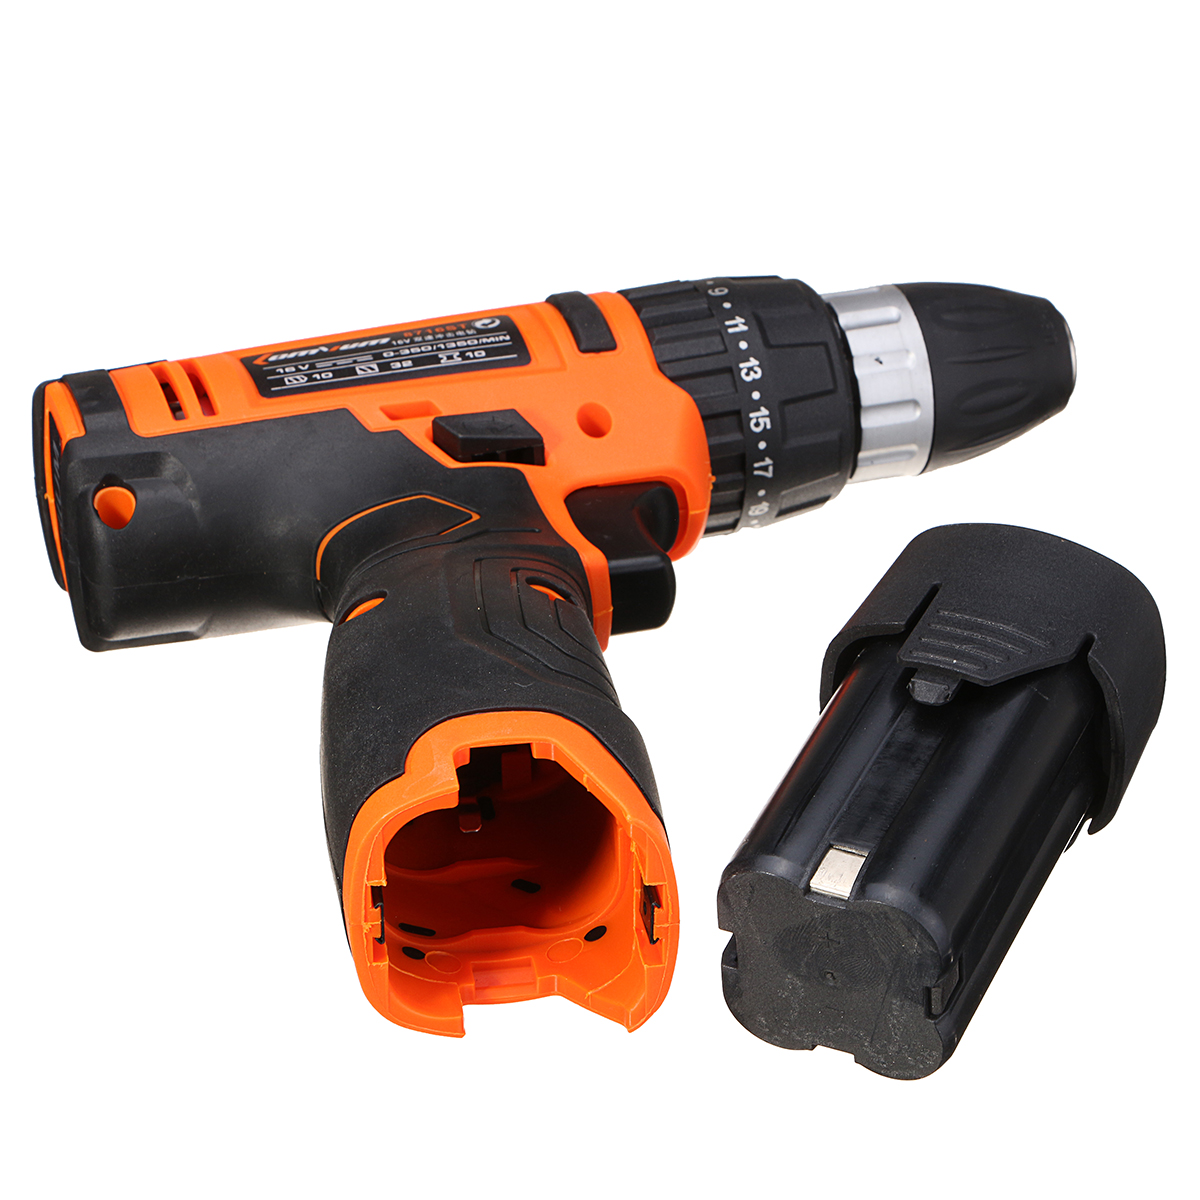 220V Drill Multifunction Battery Electric Screwdriver Rechargeable Tool